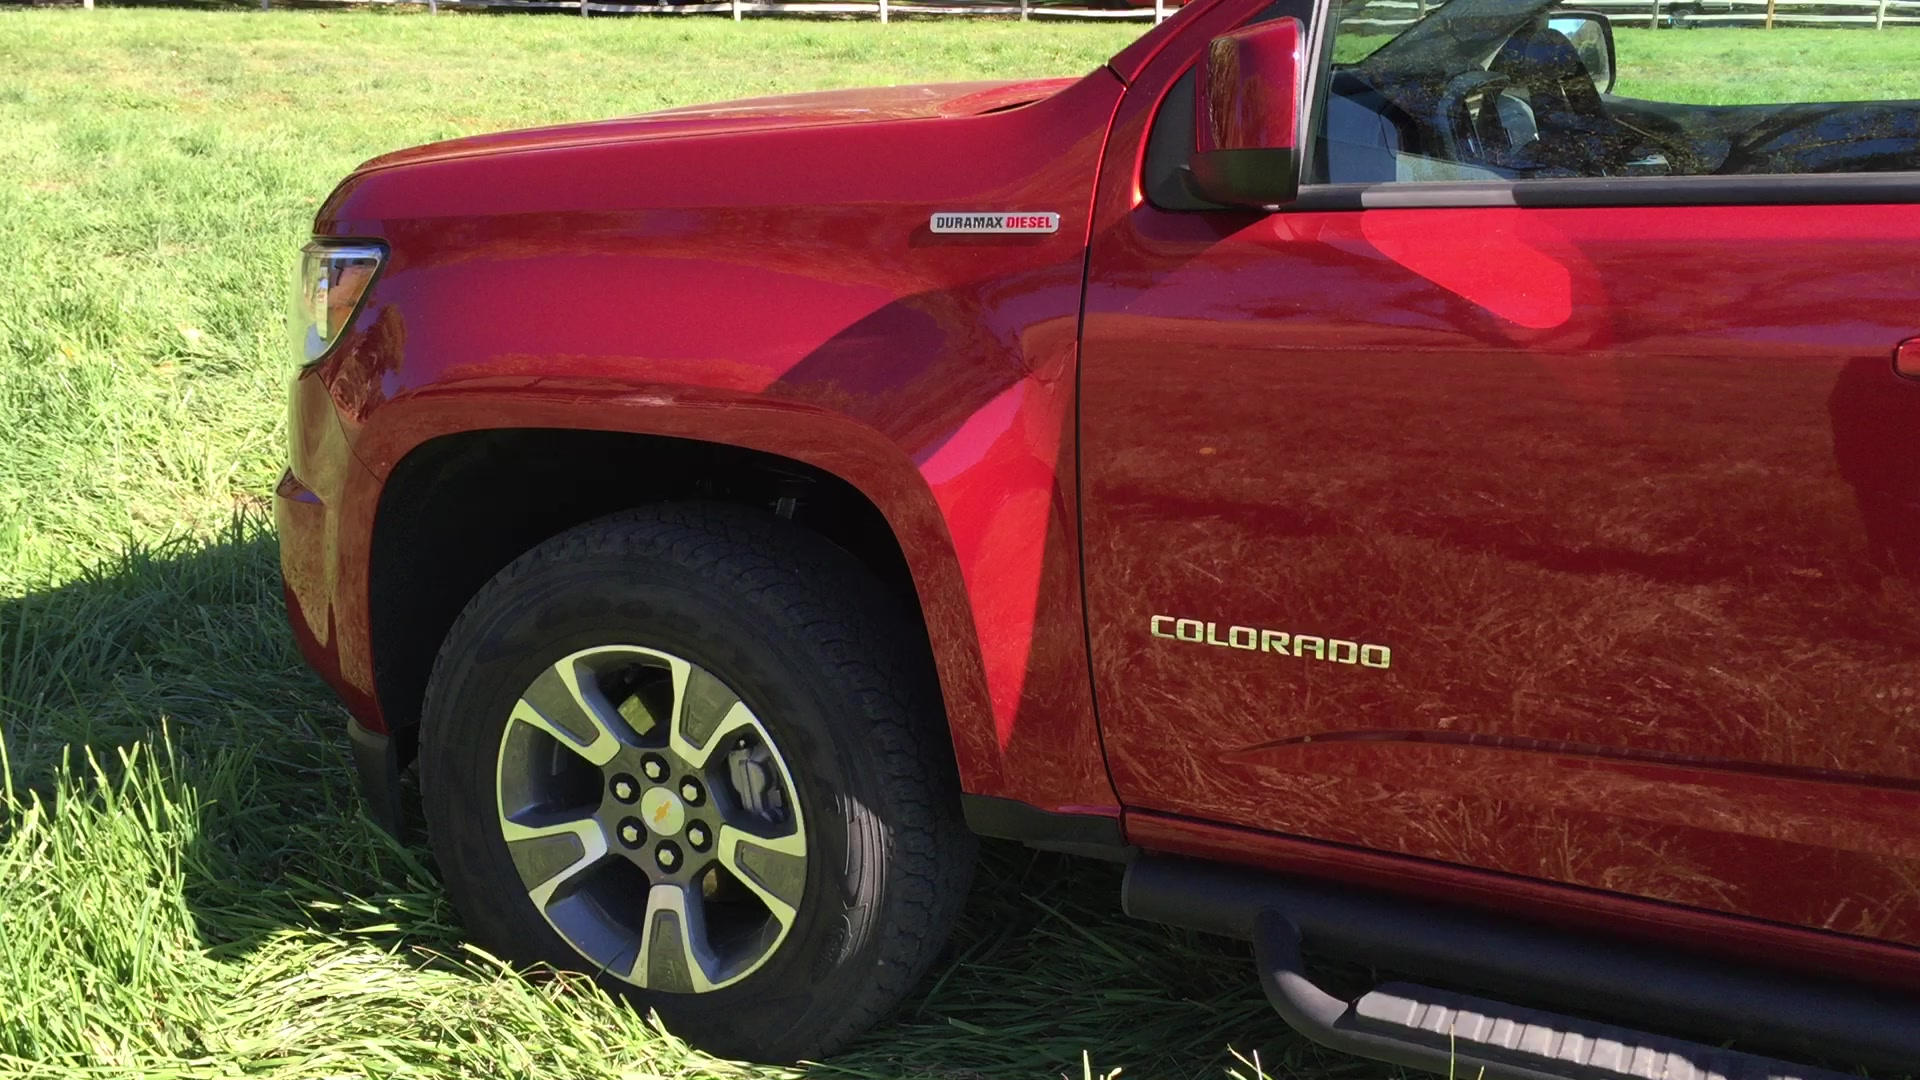 2016 Chevrolet Colorado Diesel Quietness | Autoblog Short Cuts